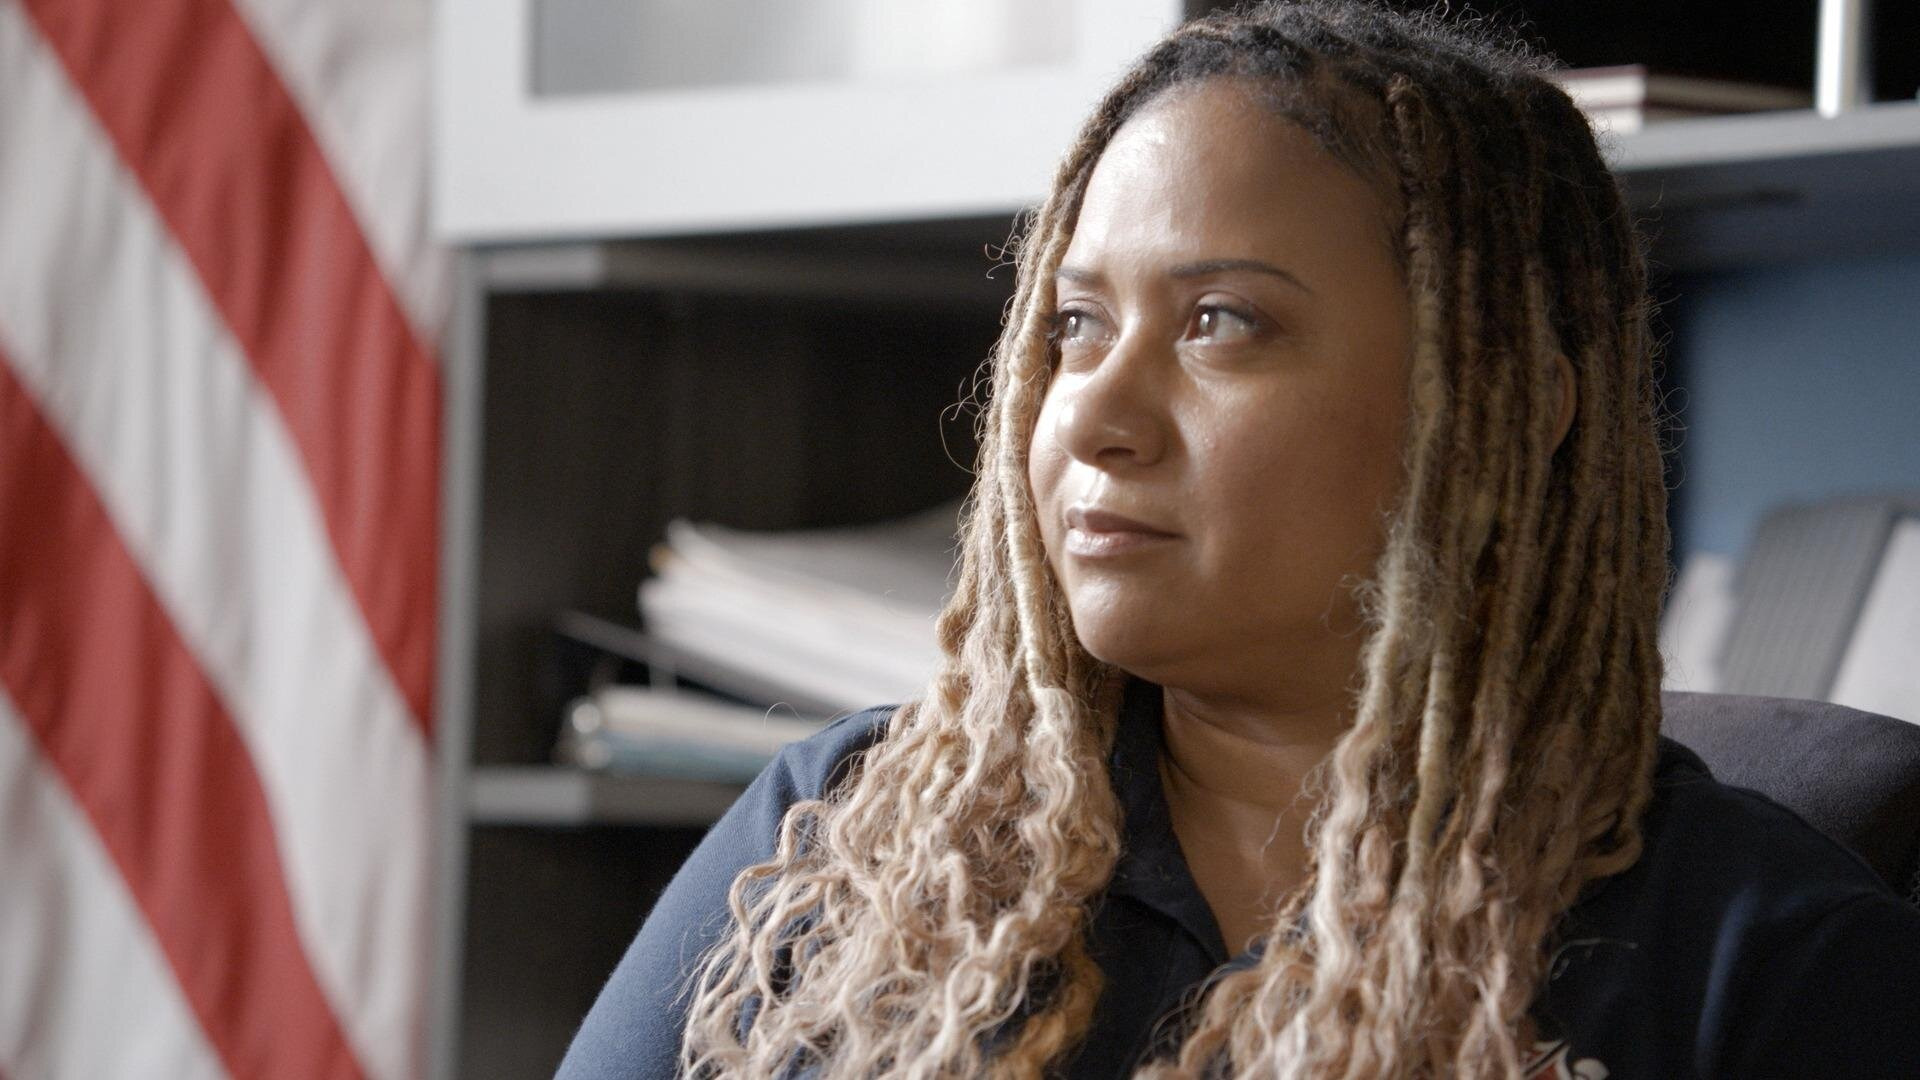 Station 19 — s04e12 — Get Up, Stand Up